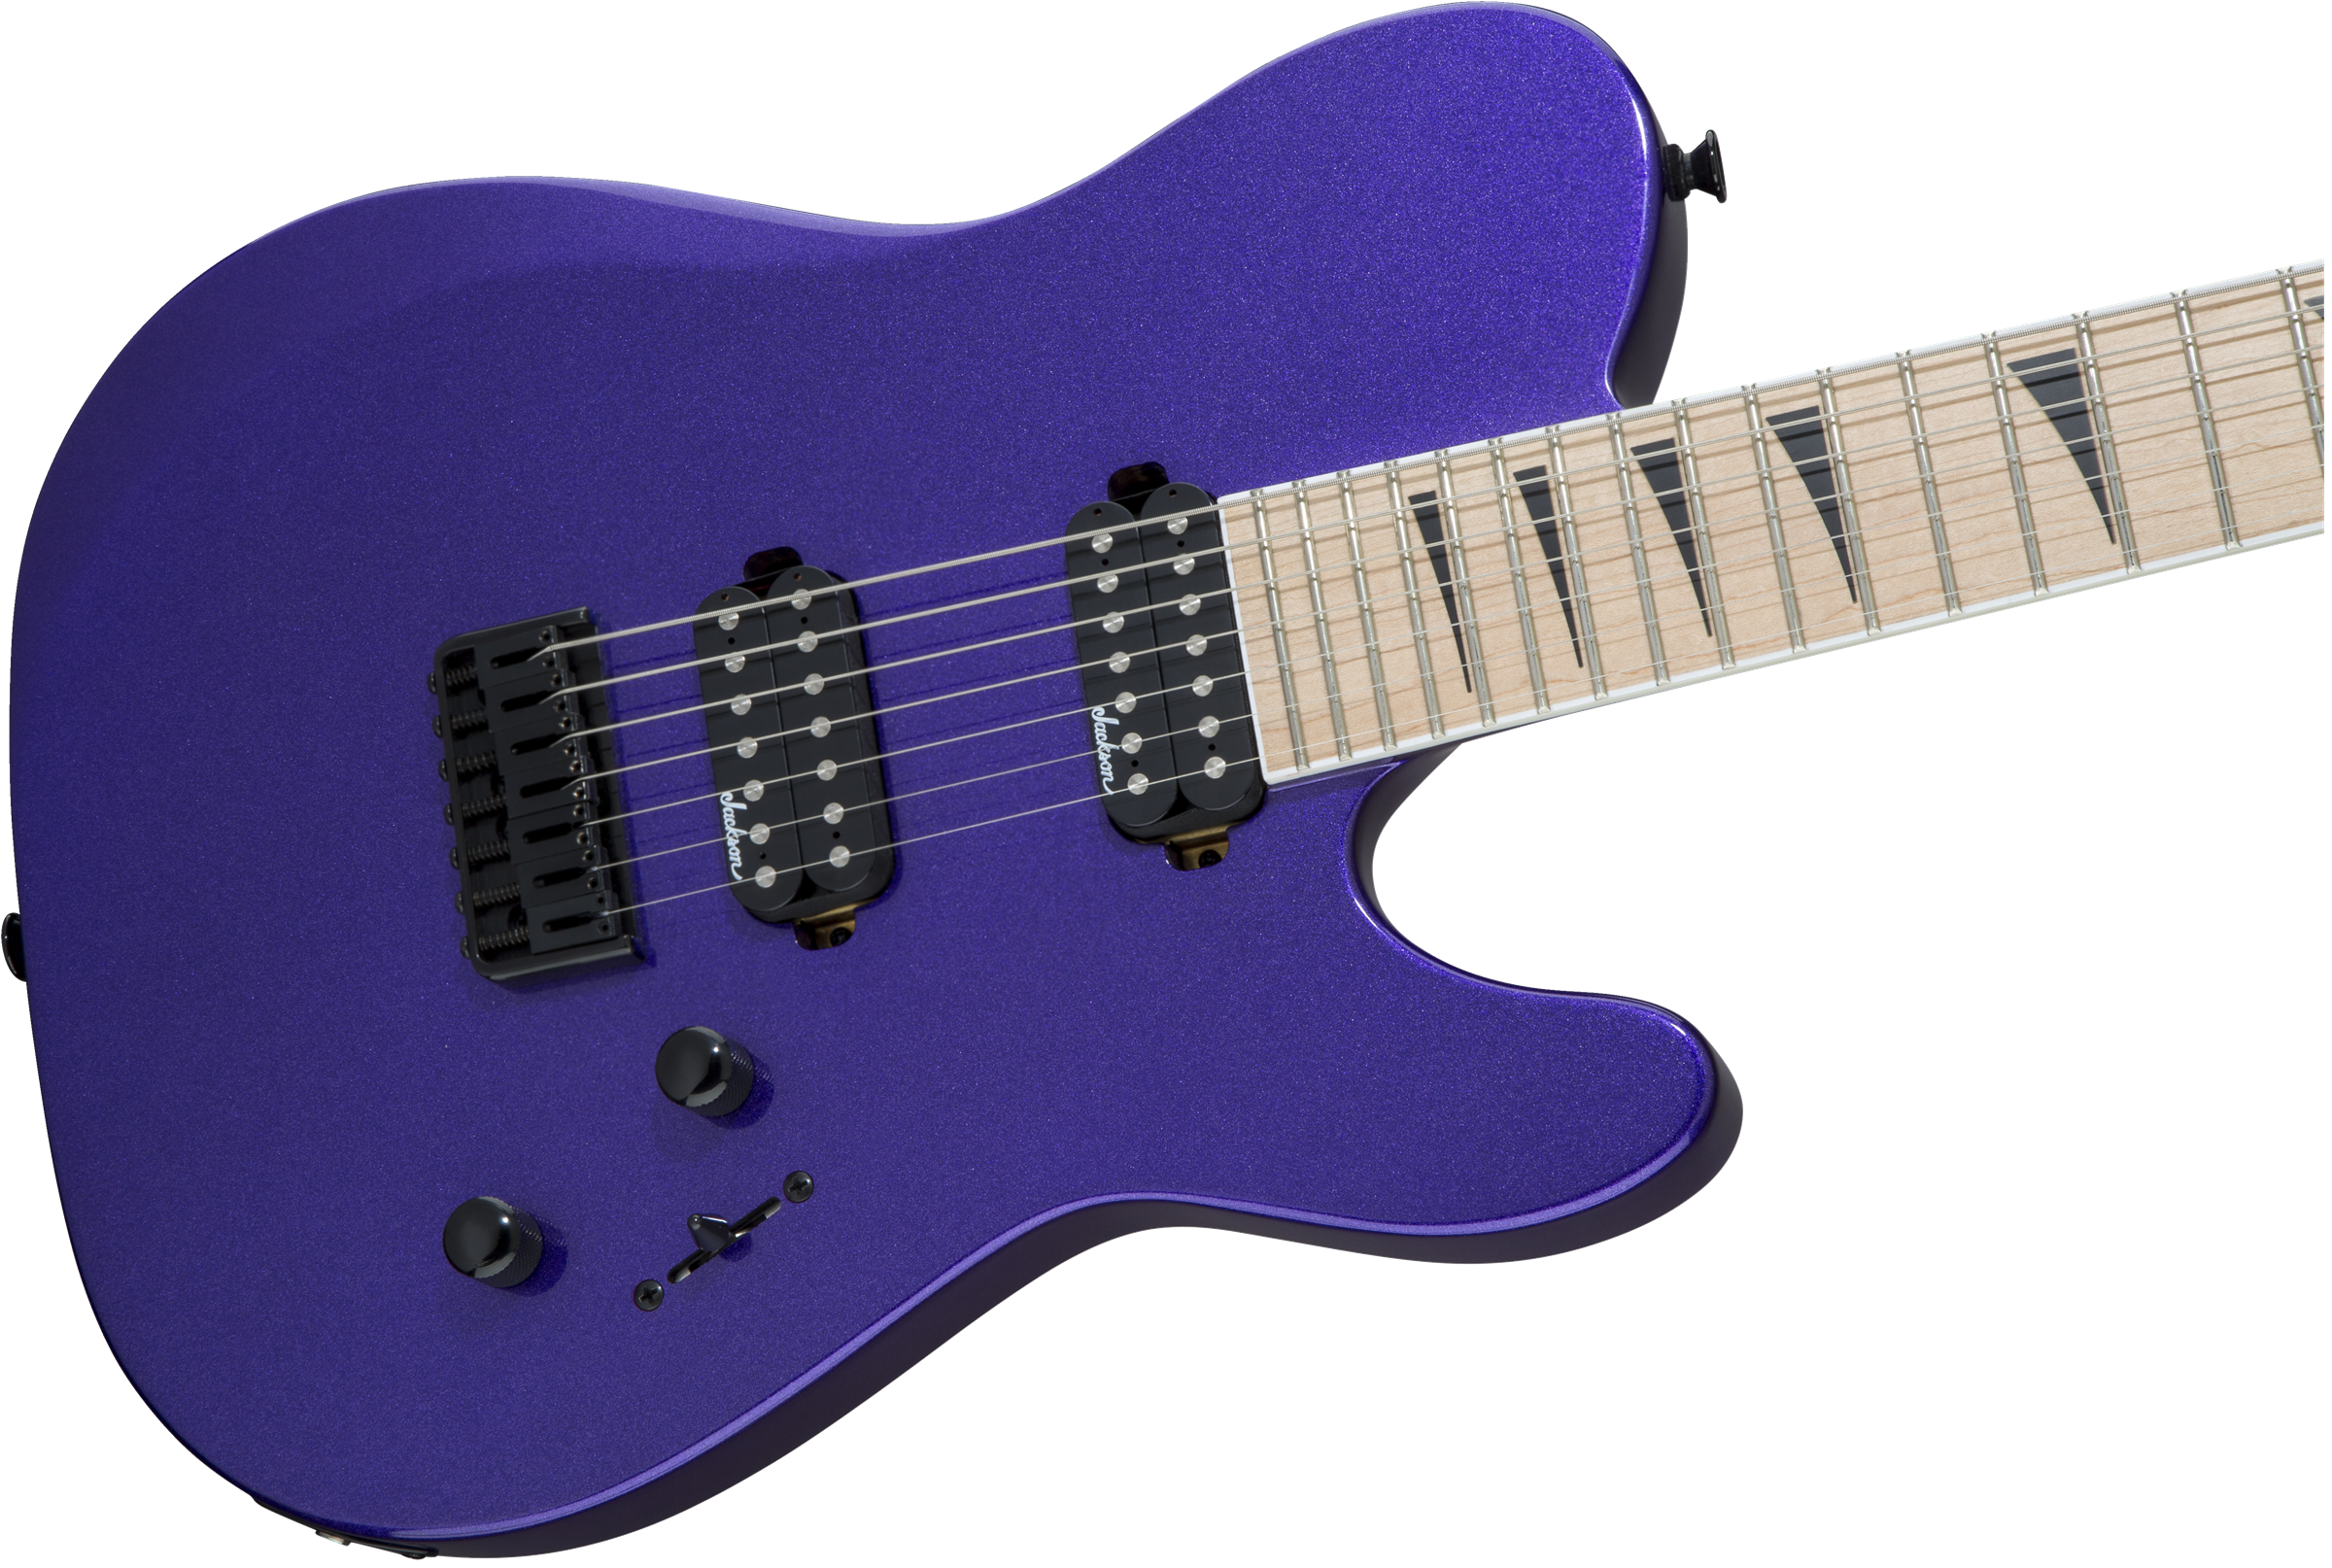 Guitars :: X Series TY2-7 HT Telly, Maple Fingerboard, Pavo Purple